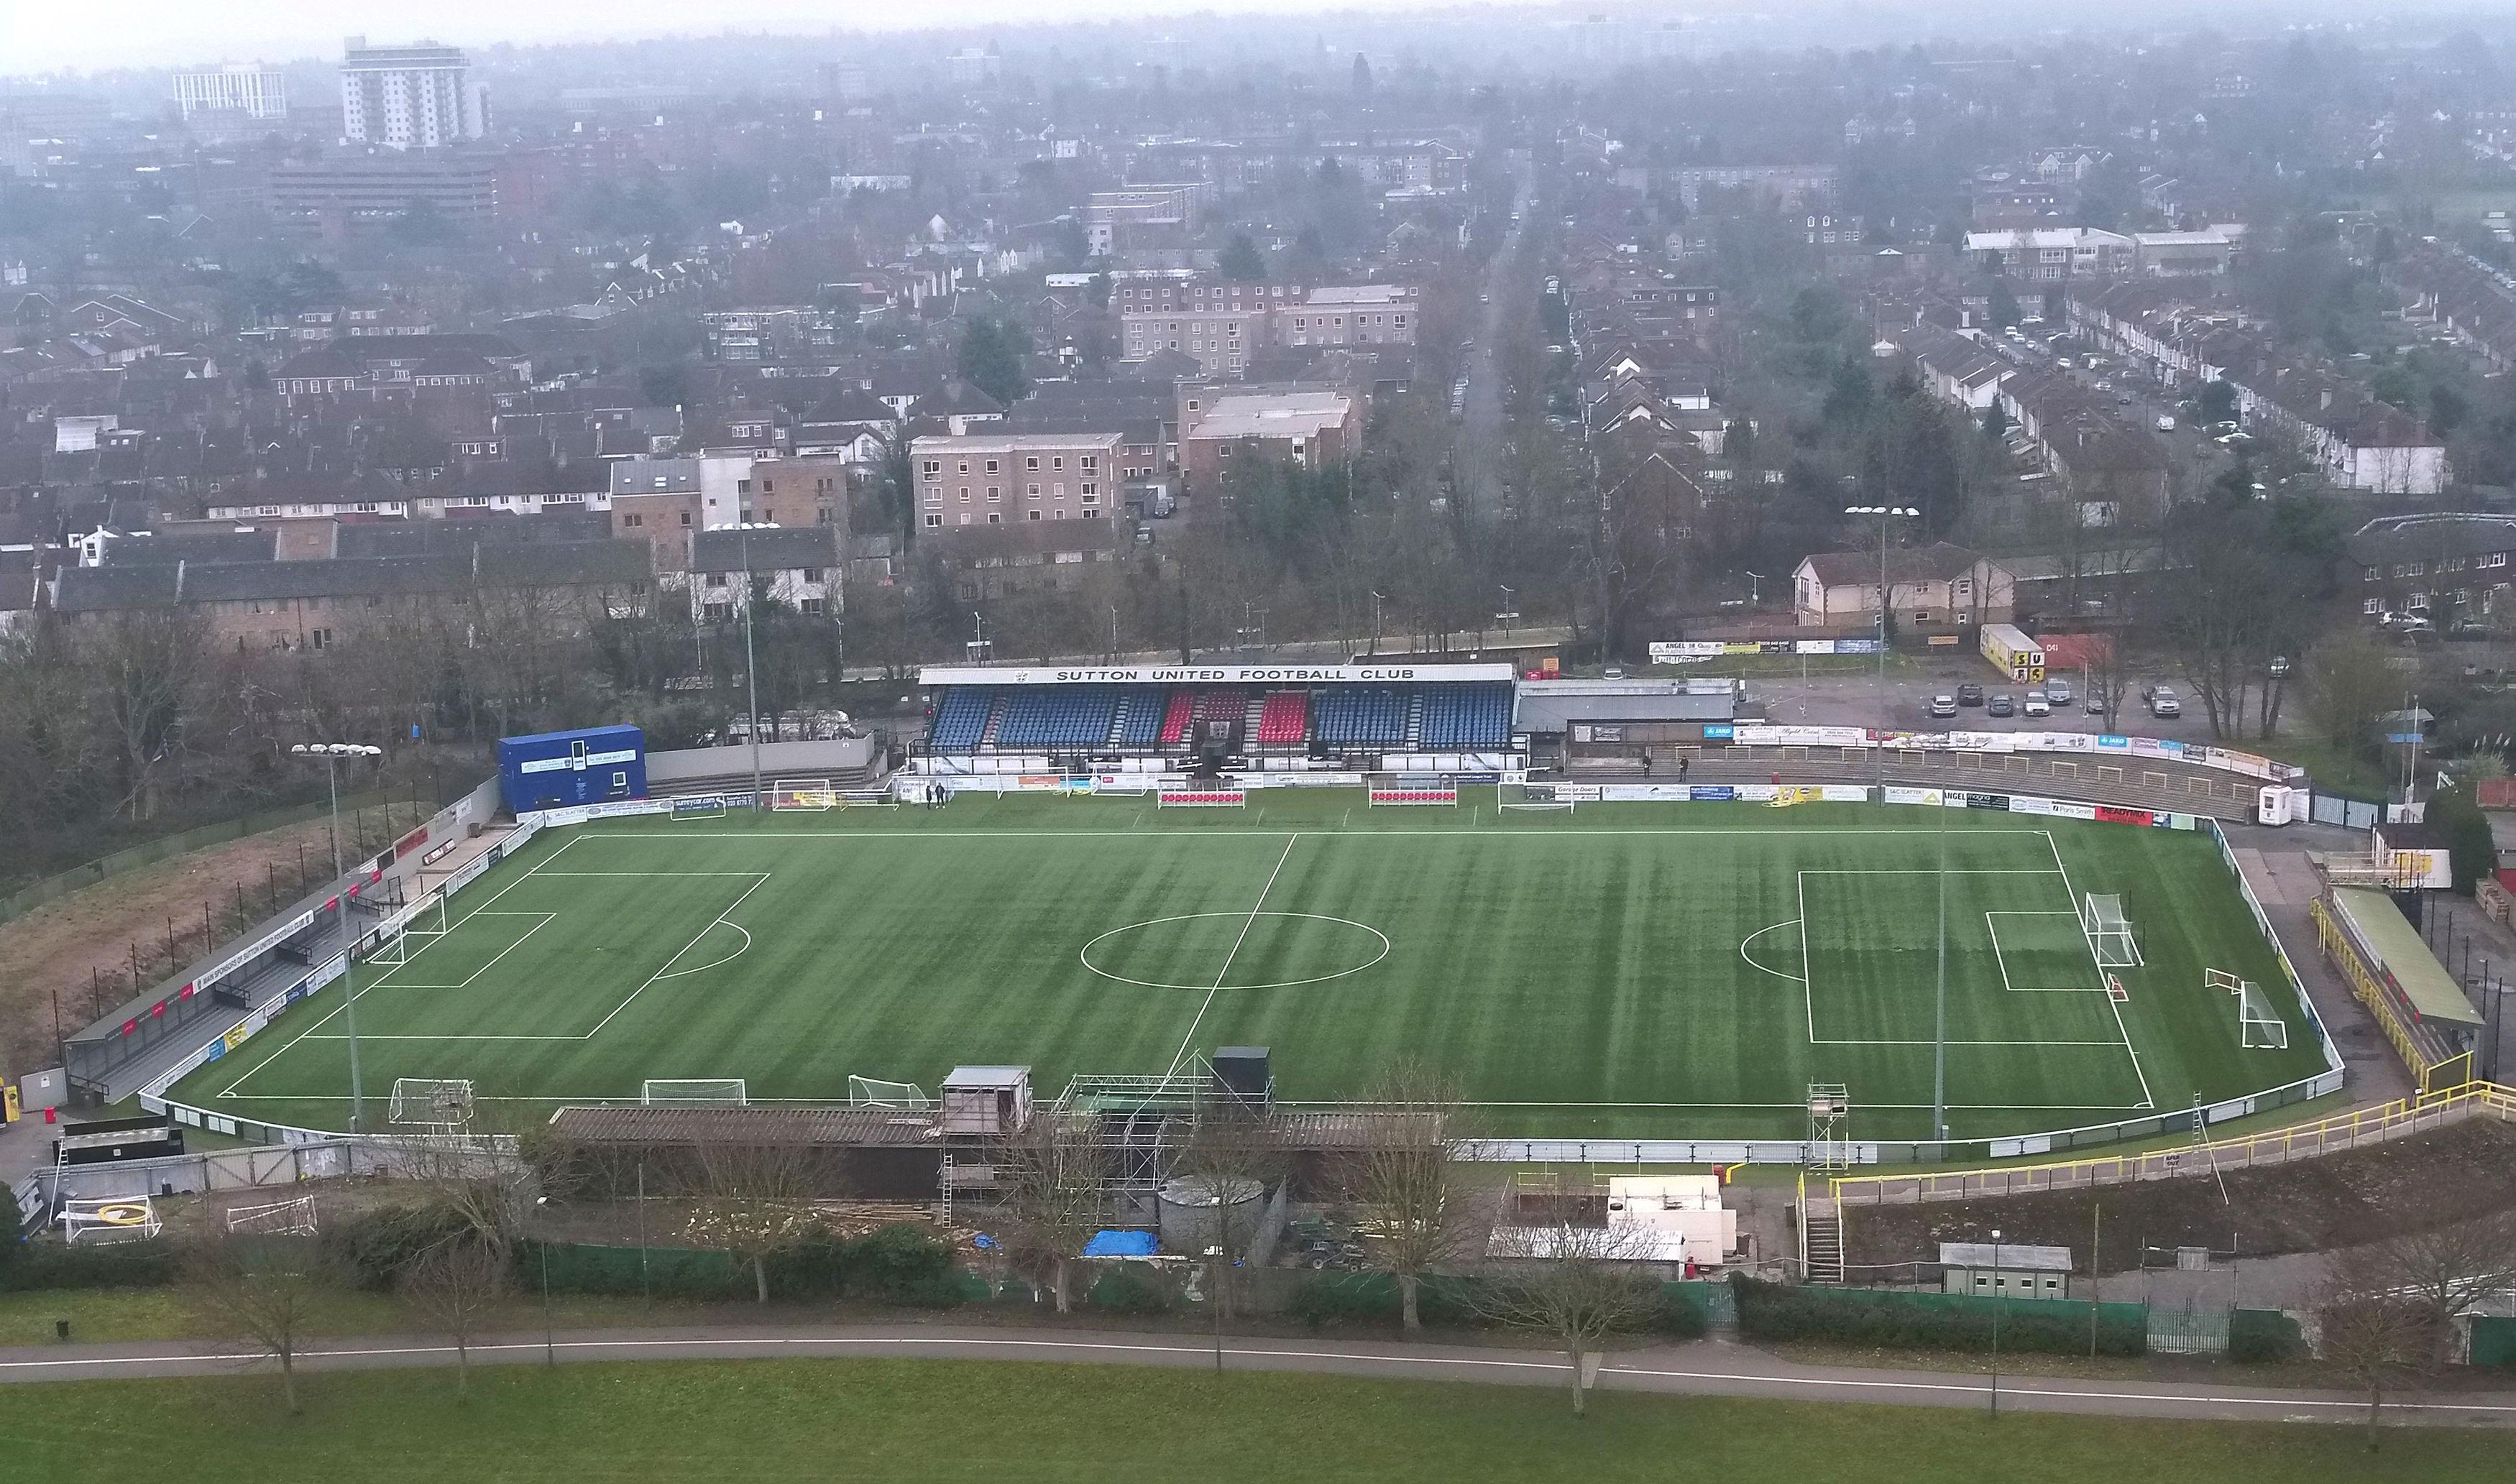 Nice pitch, shame if something were to happen to it